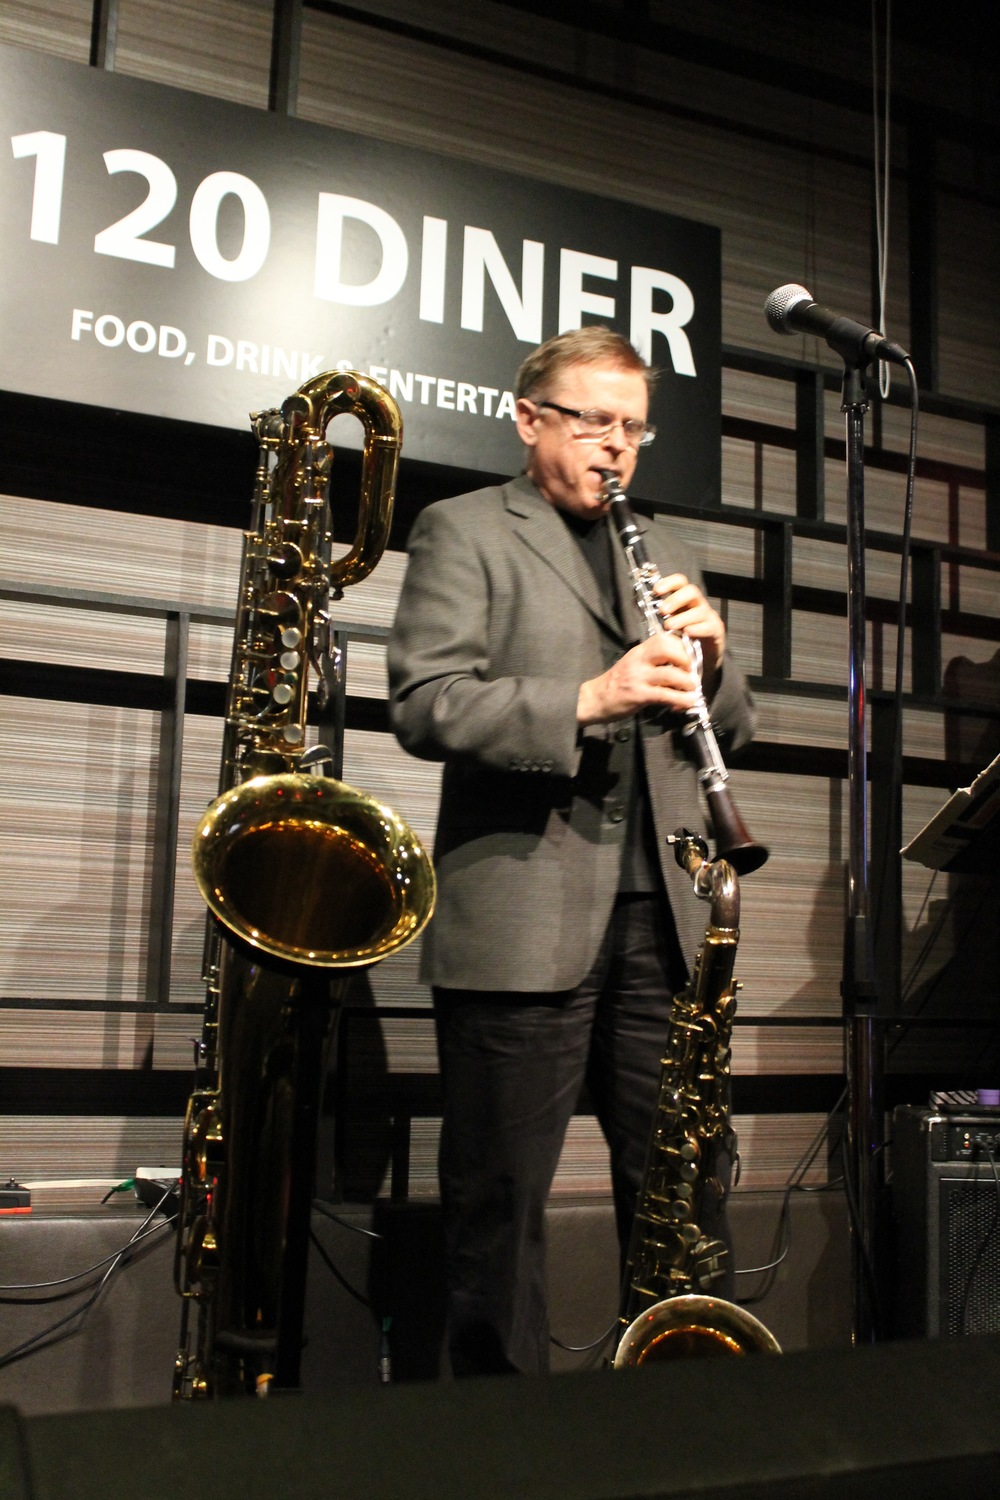 John MacMurchy with Jim Galloway's baritone saxophone in front of him at the 120 Diner in Toronto - Mar. 2016